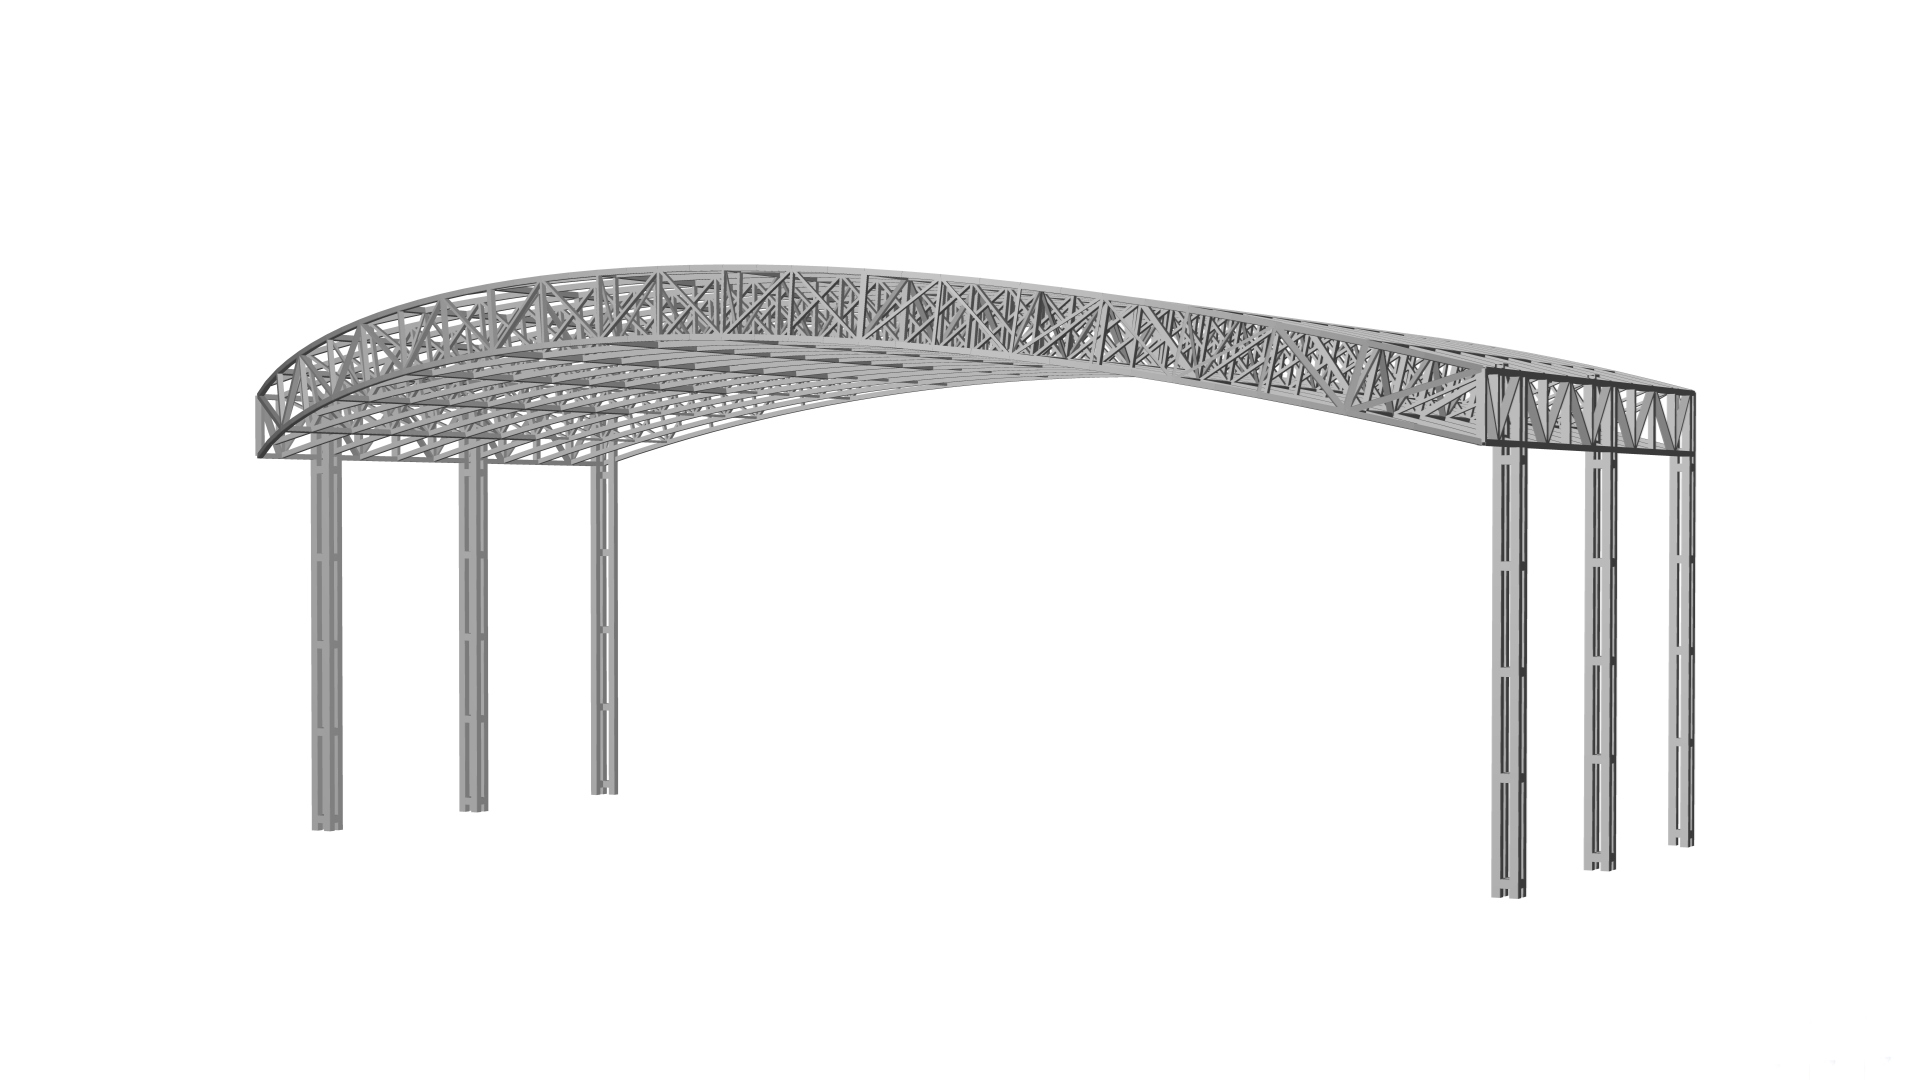 Structural model of stage canopy